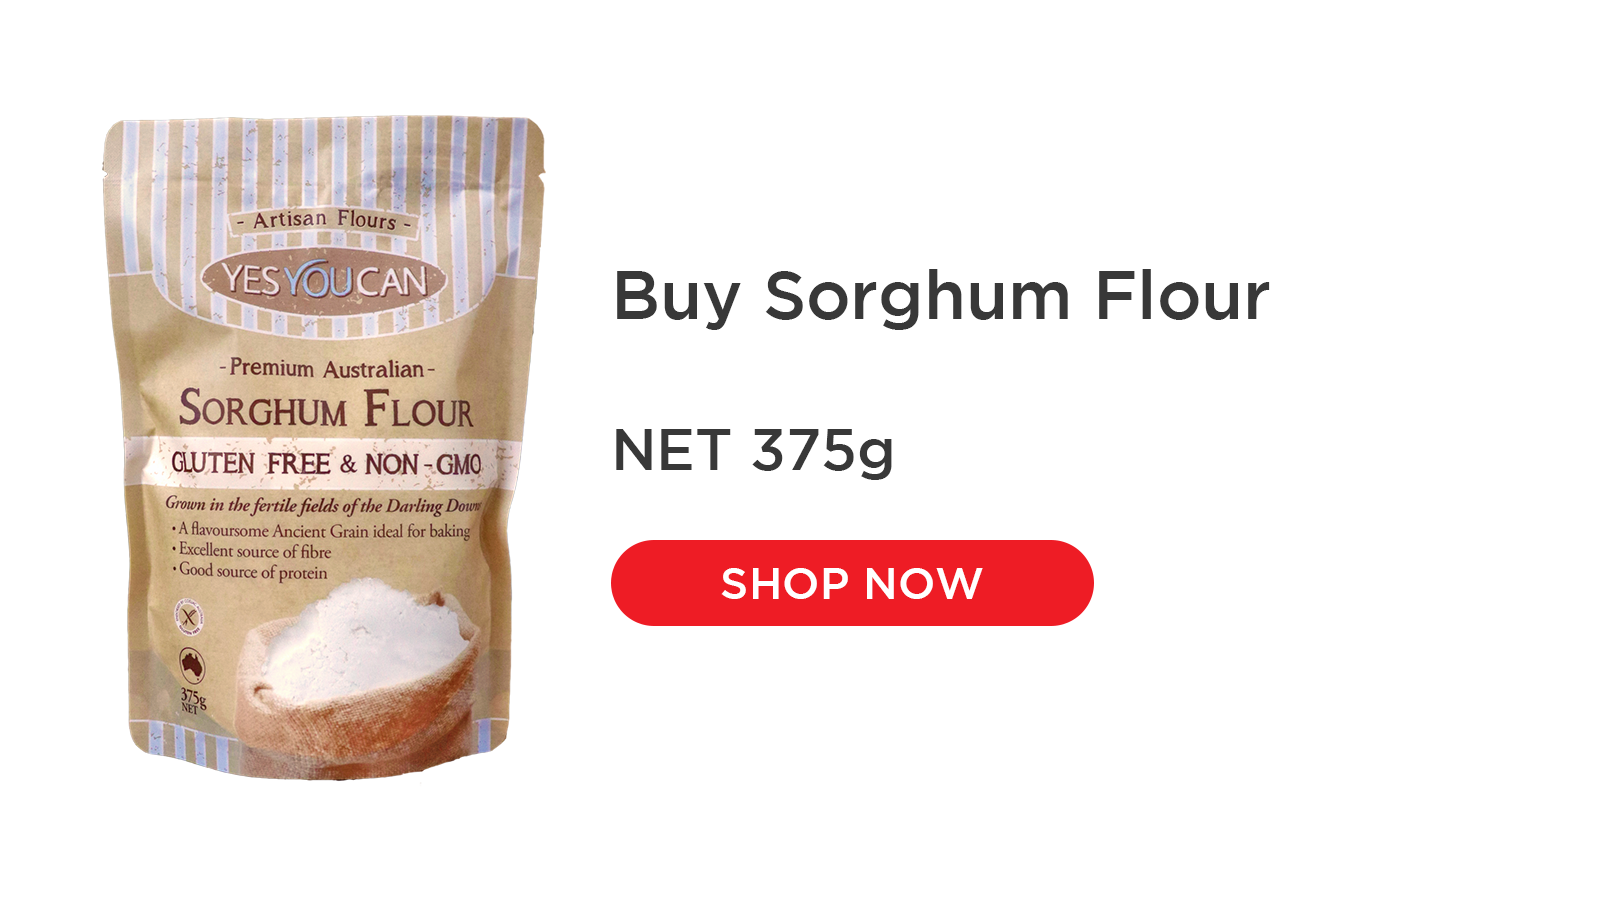 Sorghum flour has a mild, bland taste so is an idea substitute in baking. Sorghum can be used in cakes, breads, biscuits and muffins. A drier flour, its best used in combination with other gluten free flours and with added moisture in your recipe. Sorghum flour has a smooth texture, is an excellent source of fibre, a good source of protein and is low GI.